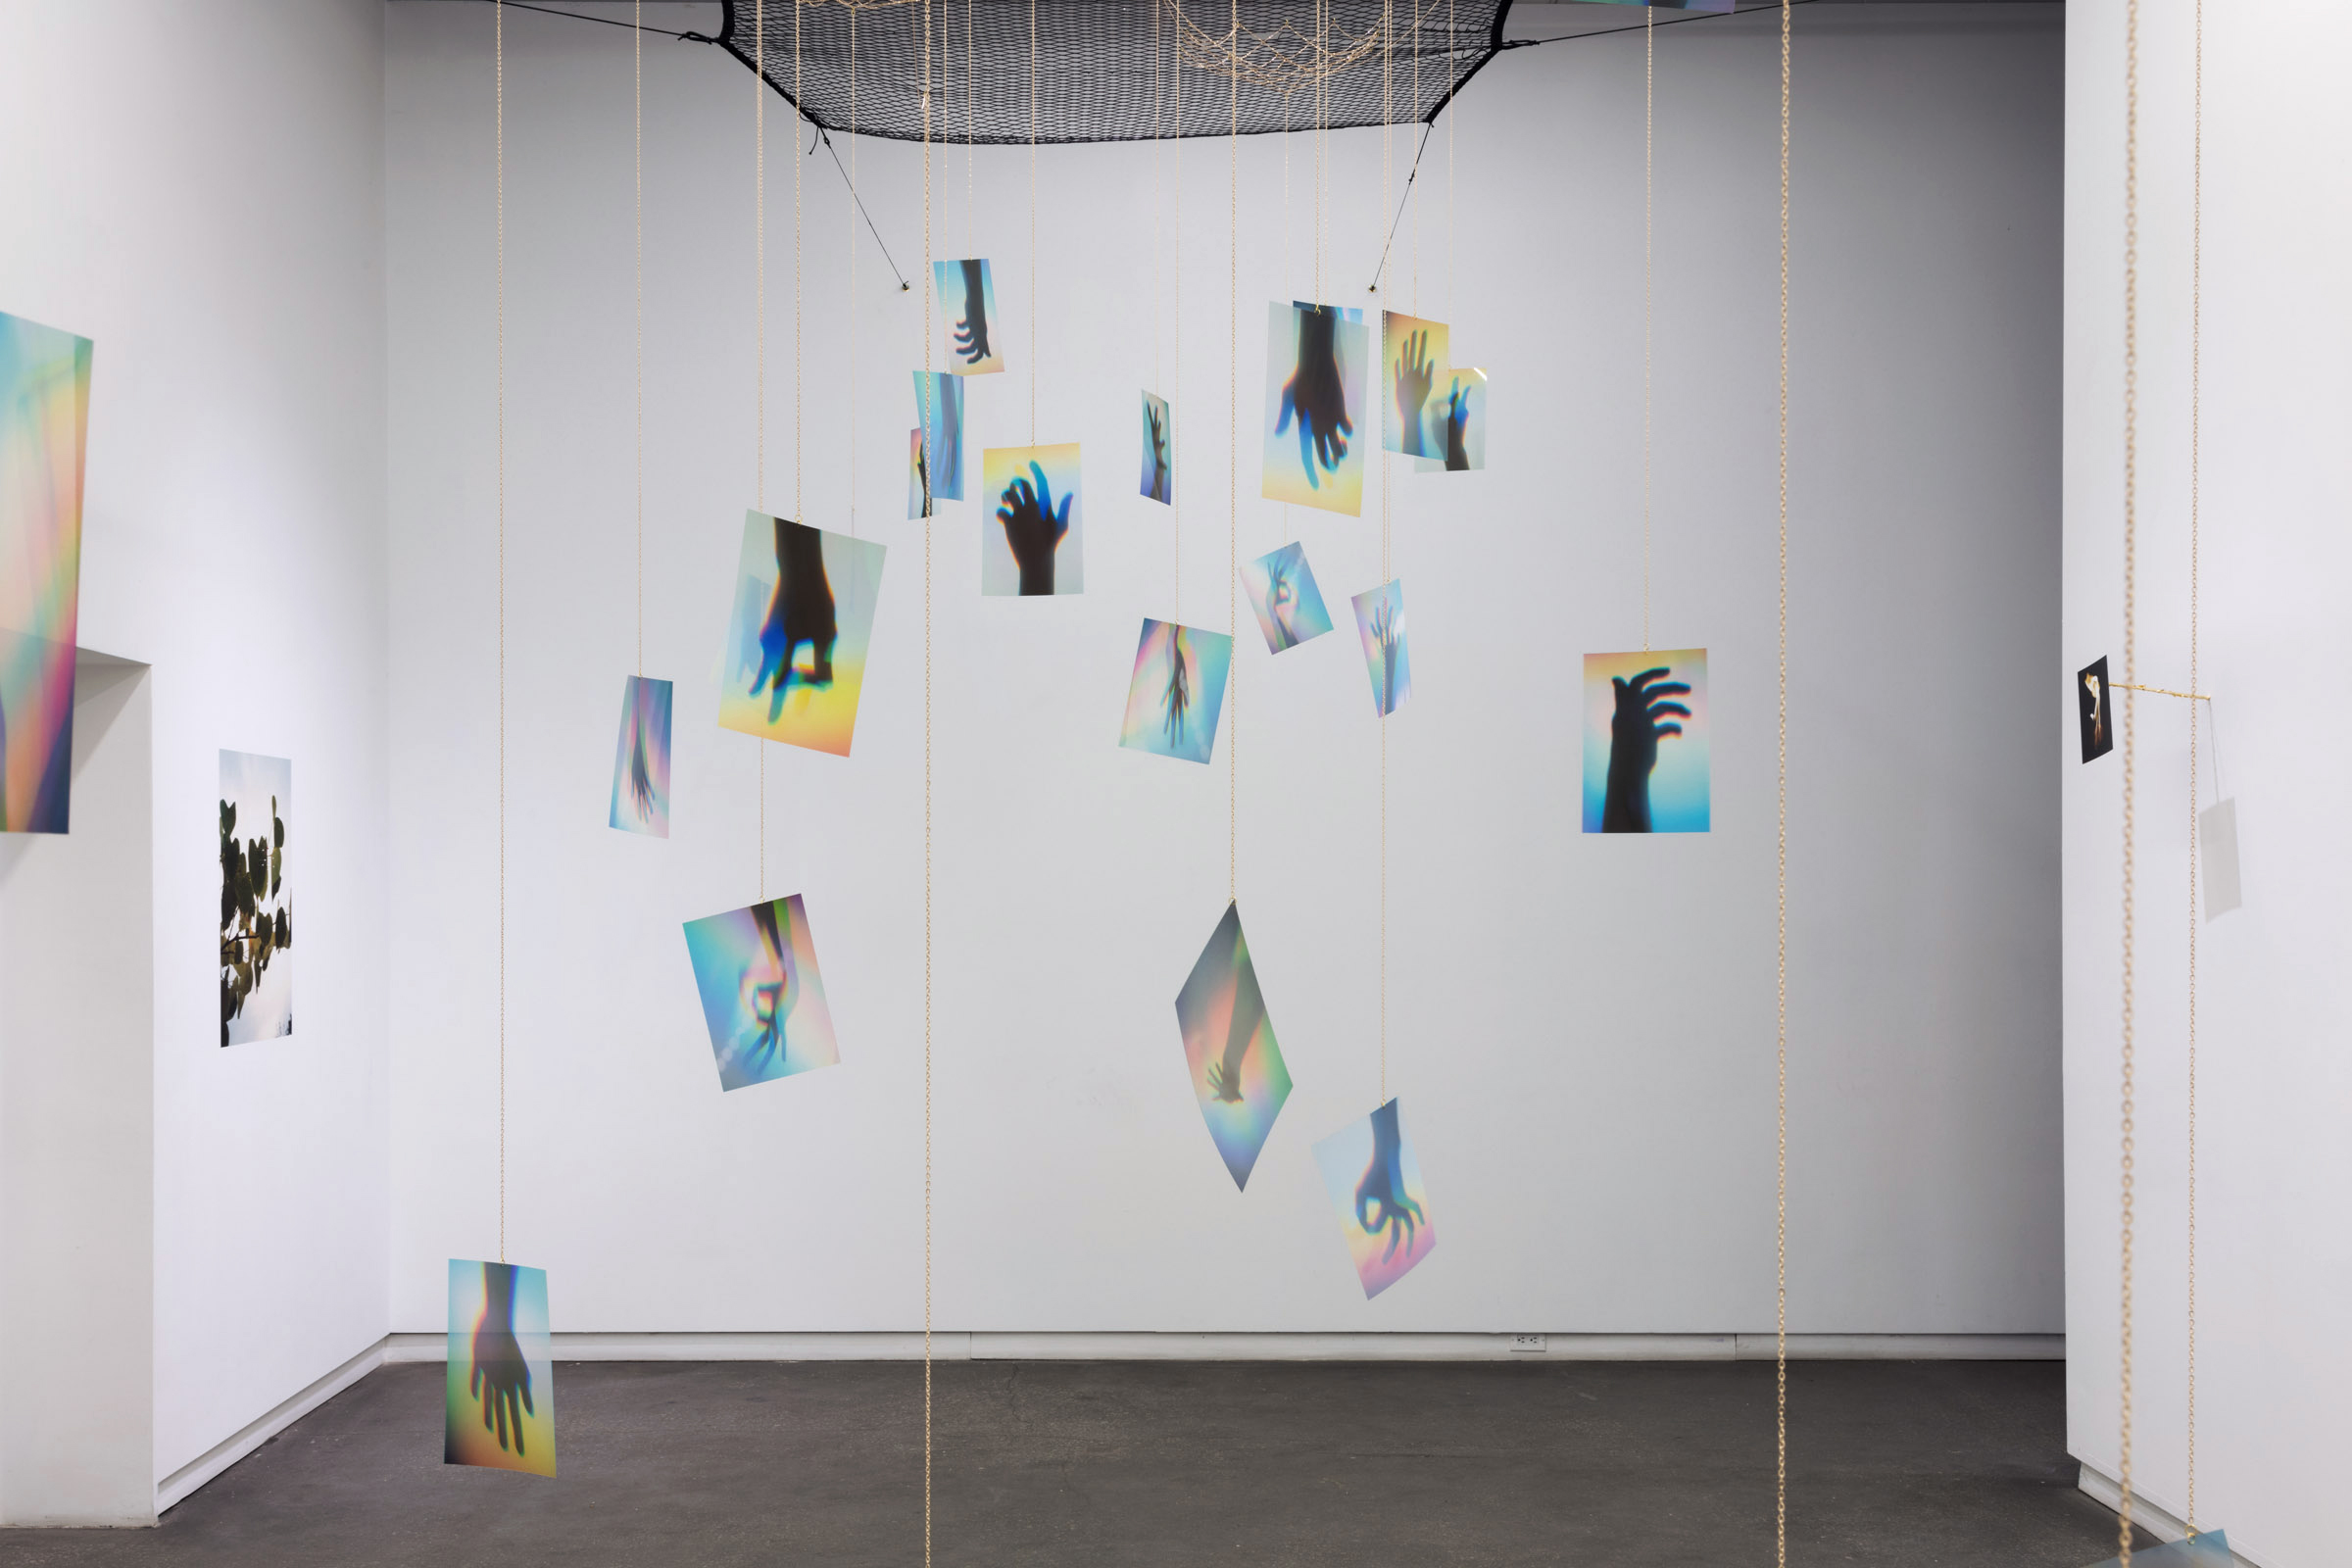 Installation view: Steven Beckly at Daniel Faria Gallery, 2020<br>Photo credit: Laura Findlay